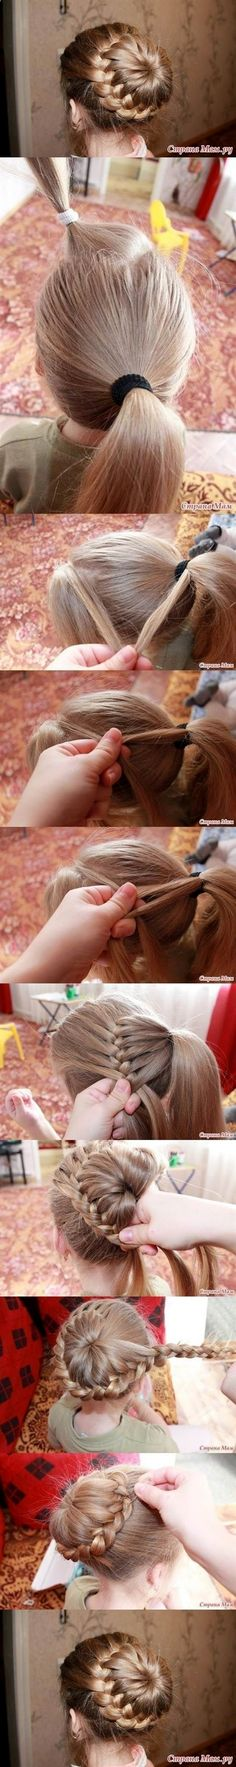 Check it out 13 beautiful braided hairstyles Rosery Braided Bun Hairstyle Tutorial The post 13 beautiful braided hairstyles Rosery Braided Bun Hairstyle Tutorial… appeared first on Top Haircuts .